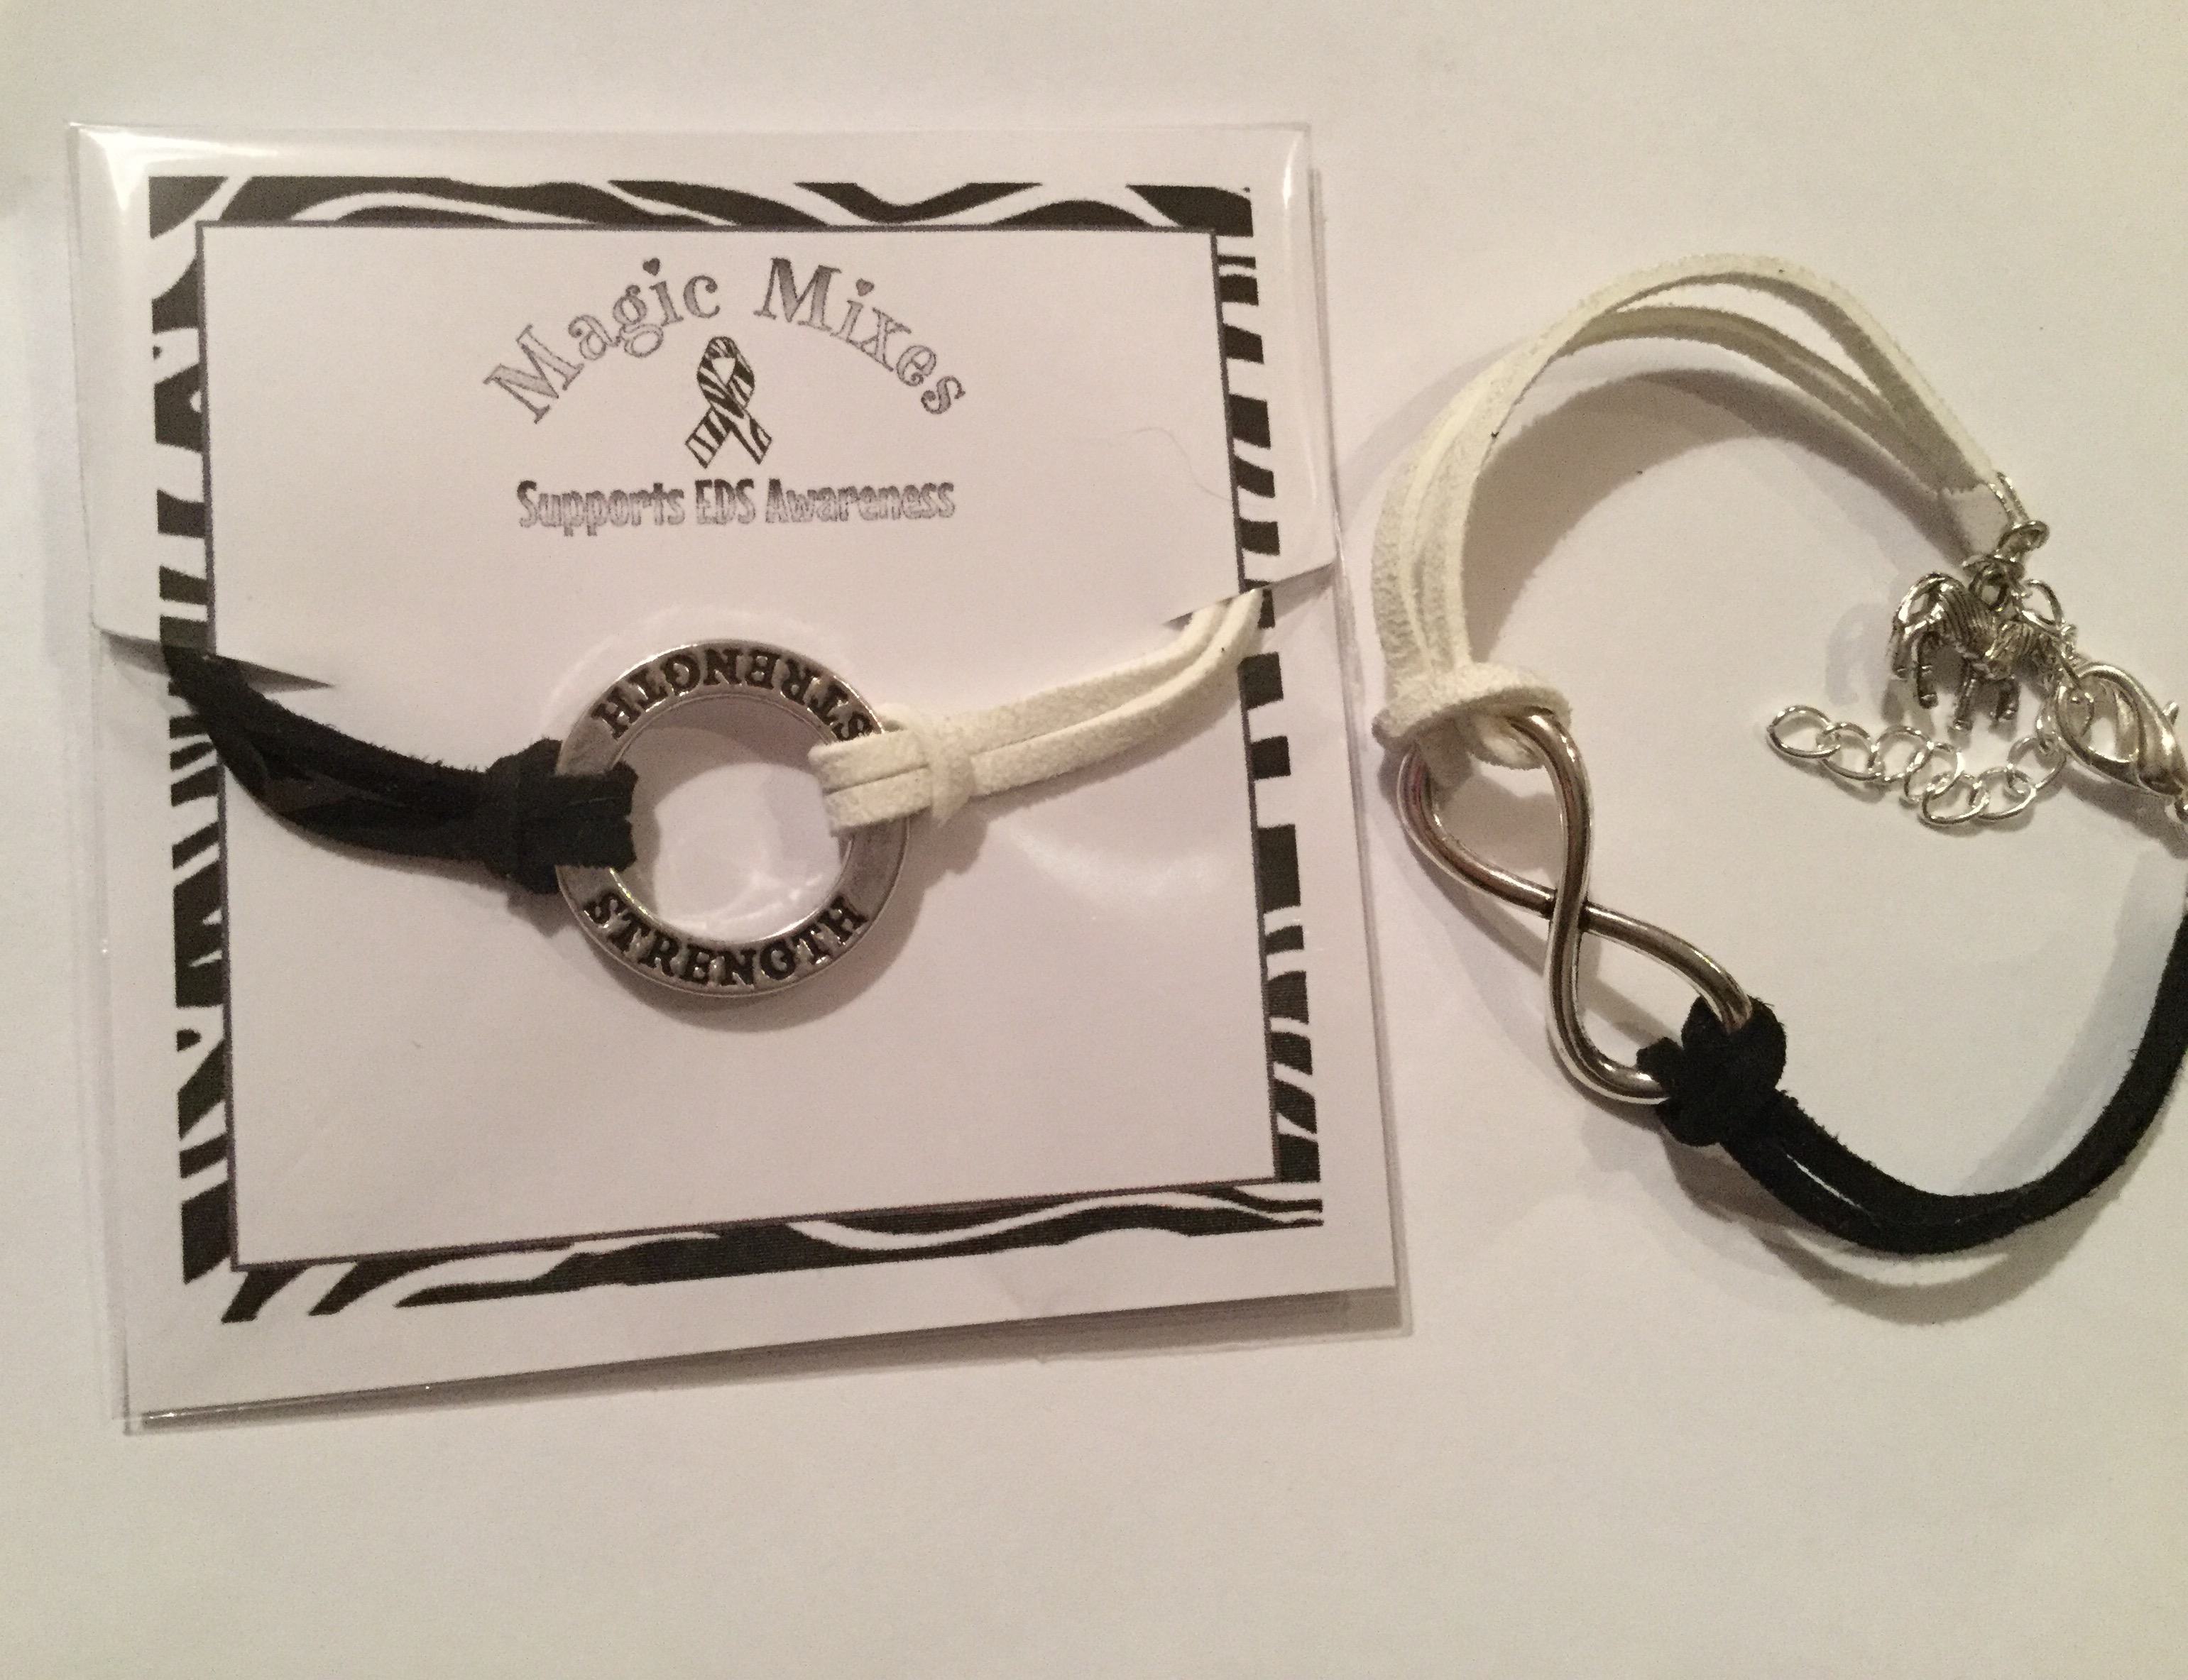 anklet butler ltd products danlos ehlers or silver zebra grace with plated rose bracelets eds and gold awareness charm syndrome bracelet